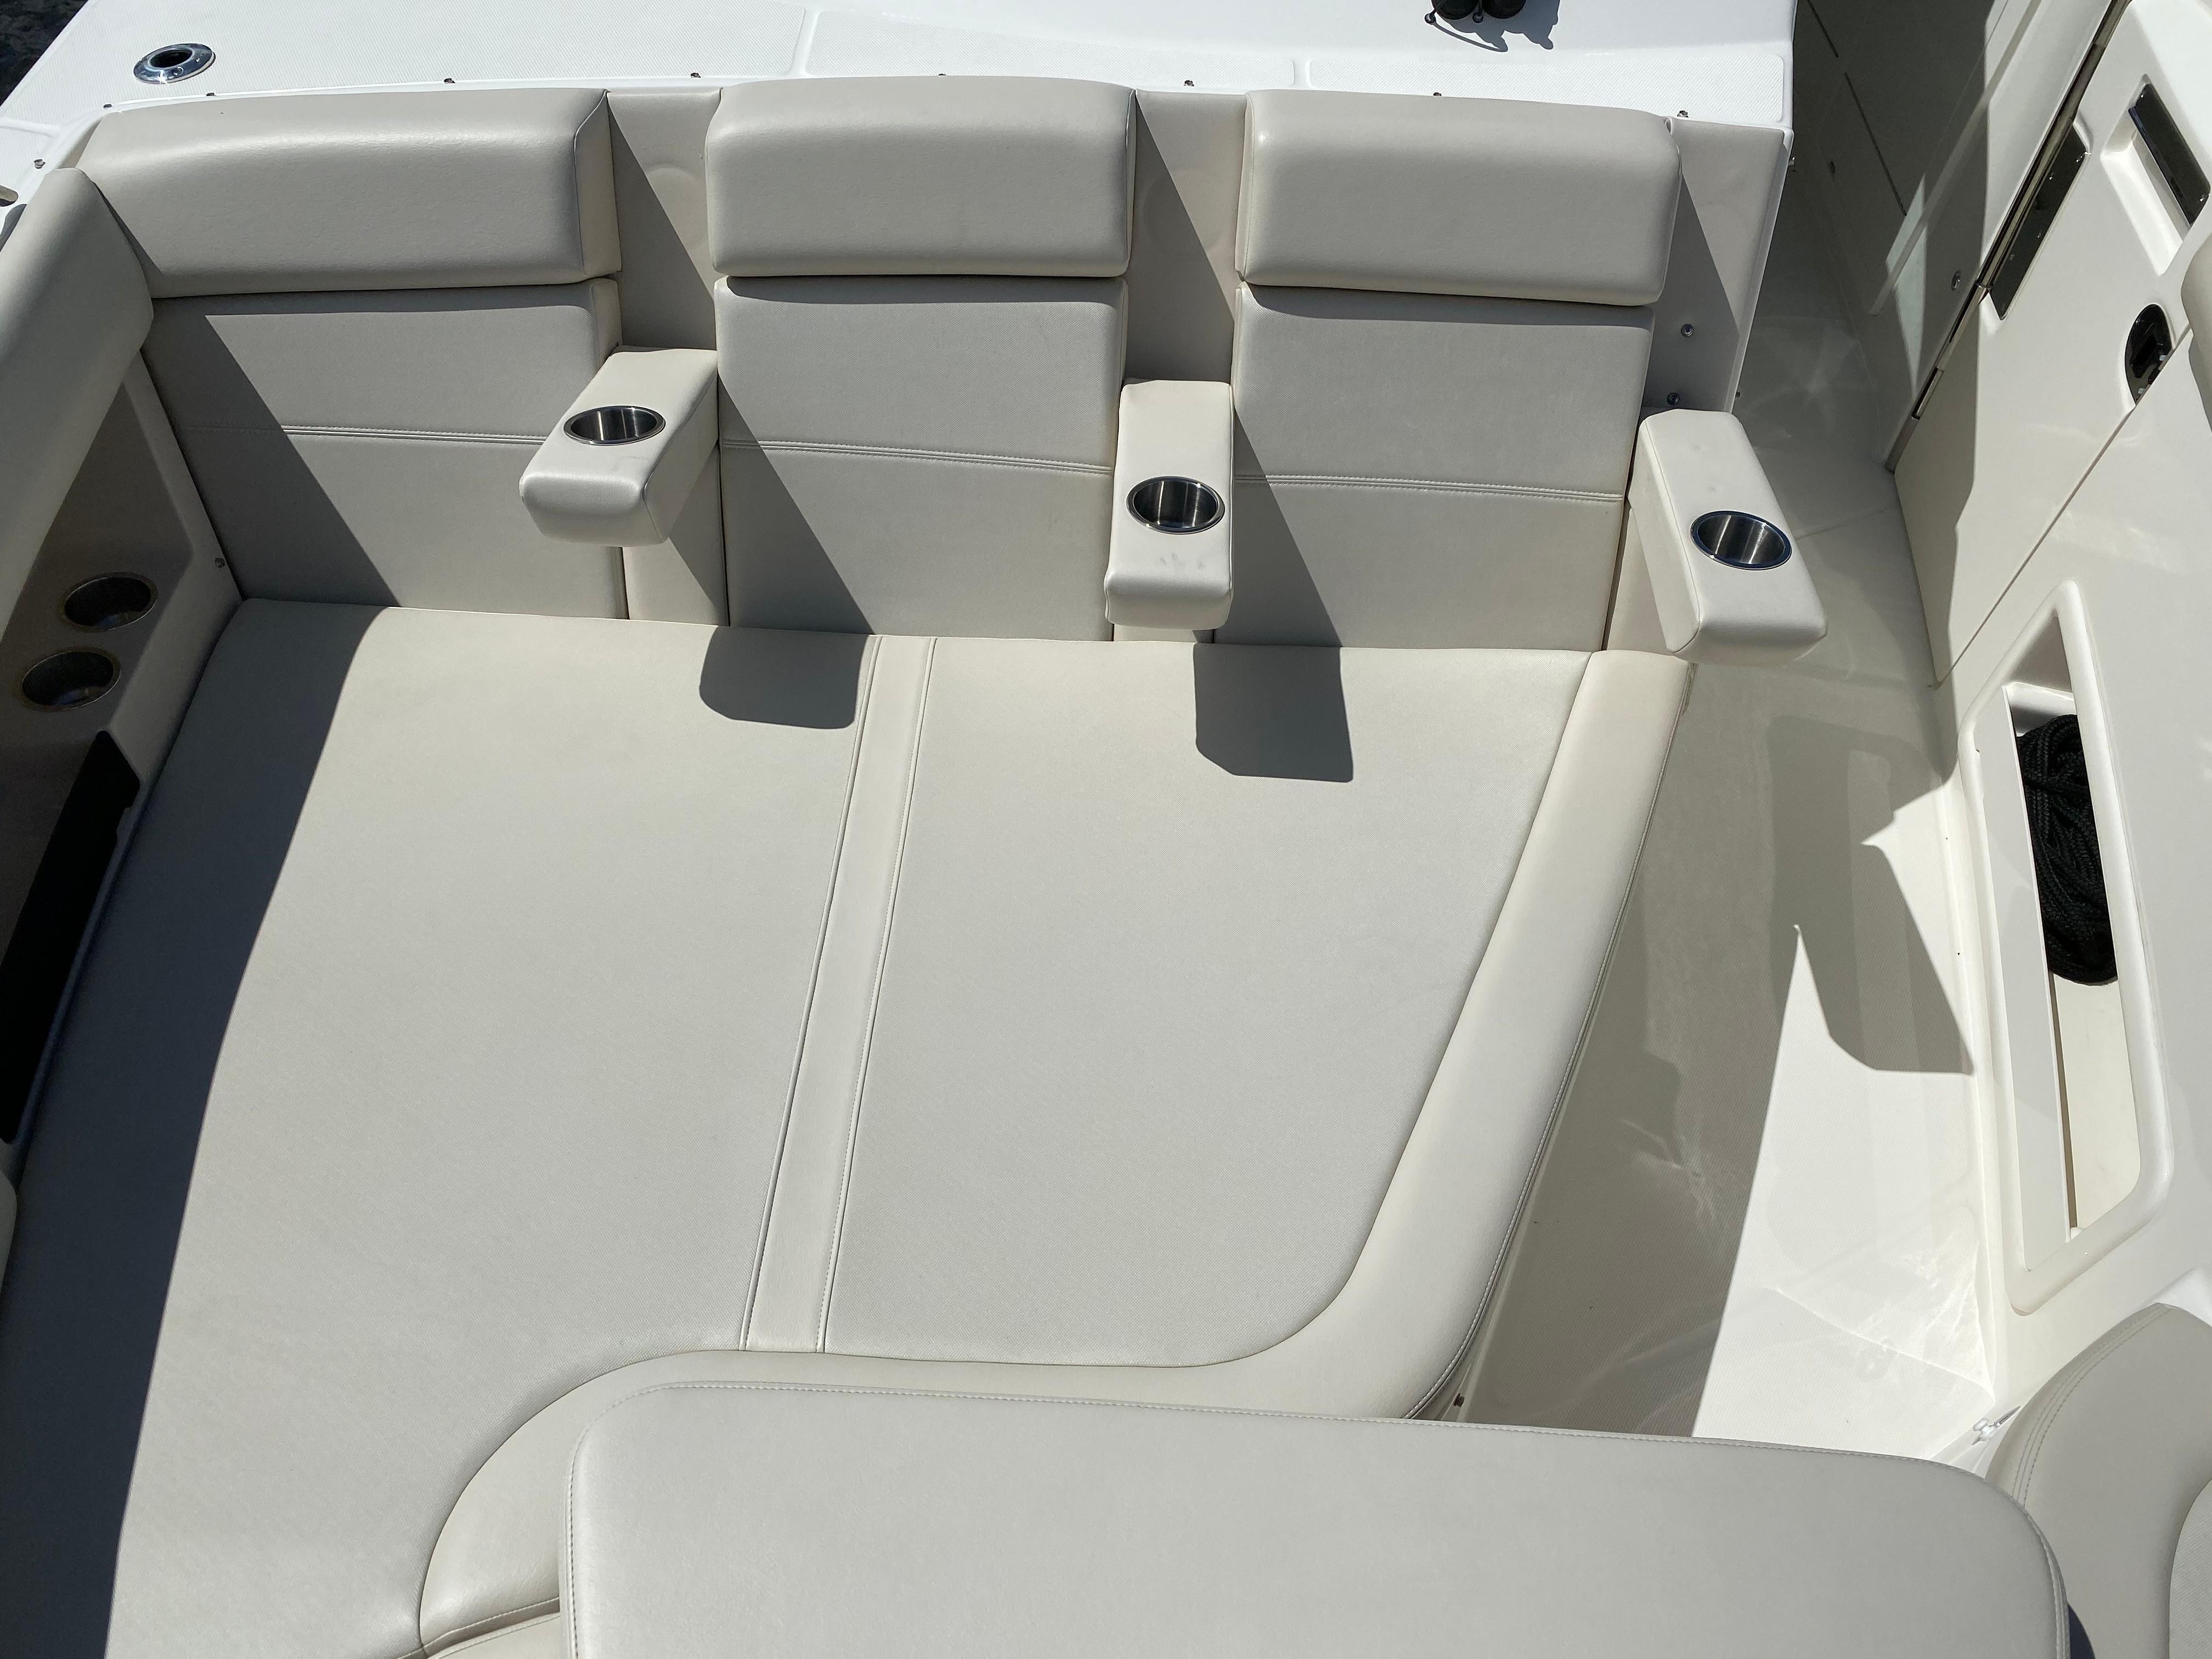 2020 Boston Whaler                                                              380 Realm Image Thumbnail #21